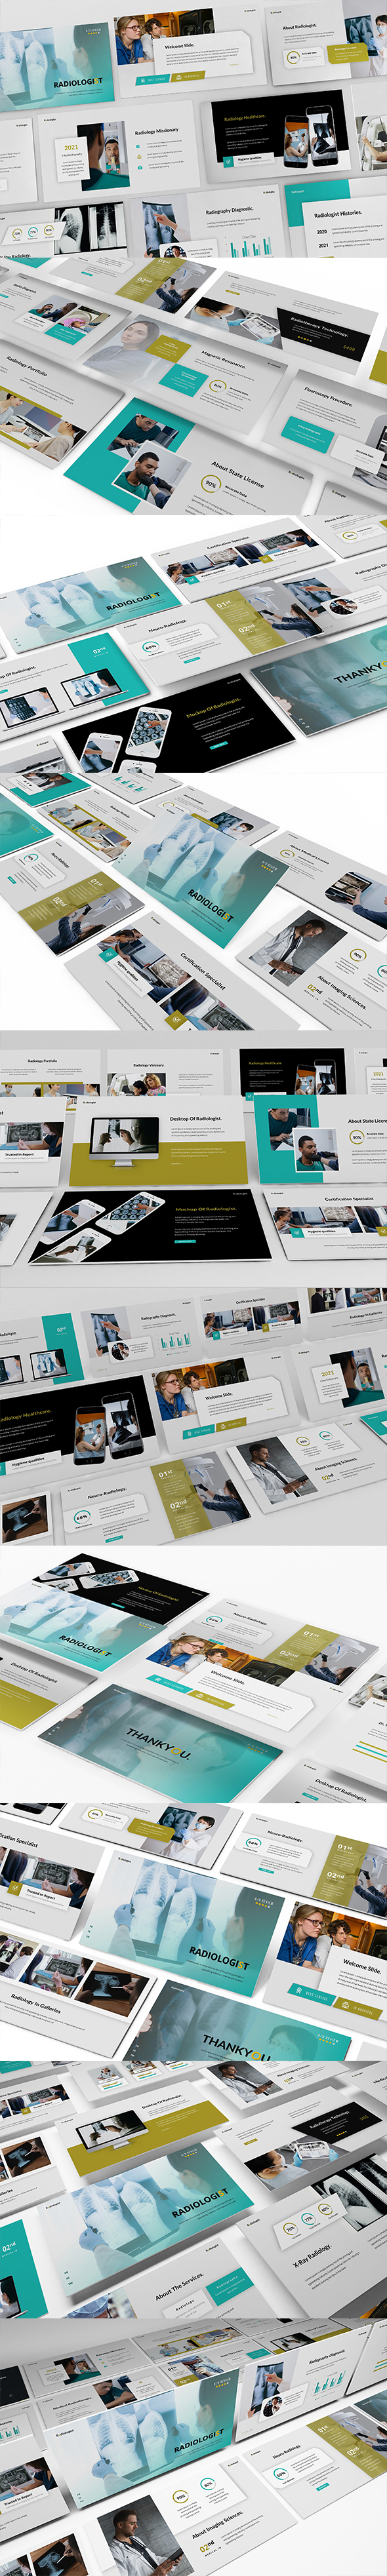 Radiology Diagnostic Powerpoint Presentation Template